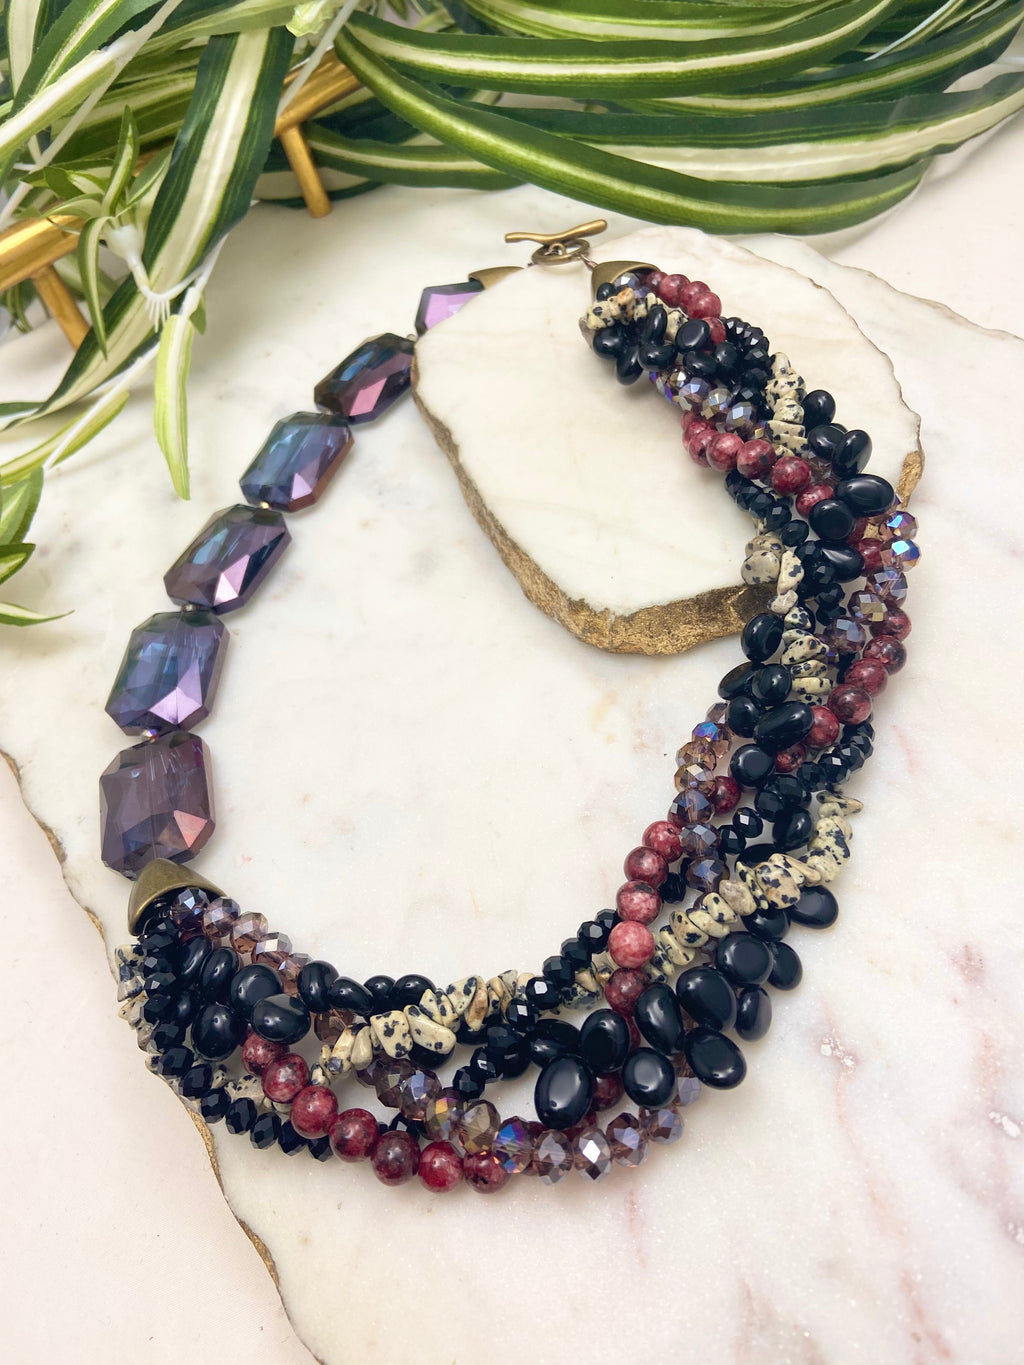 Black, burgundy and purple mingle necklace